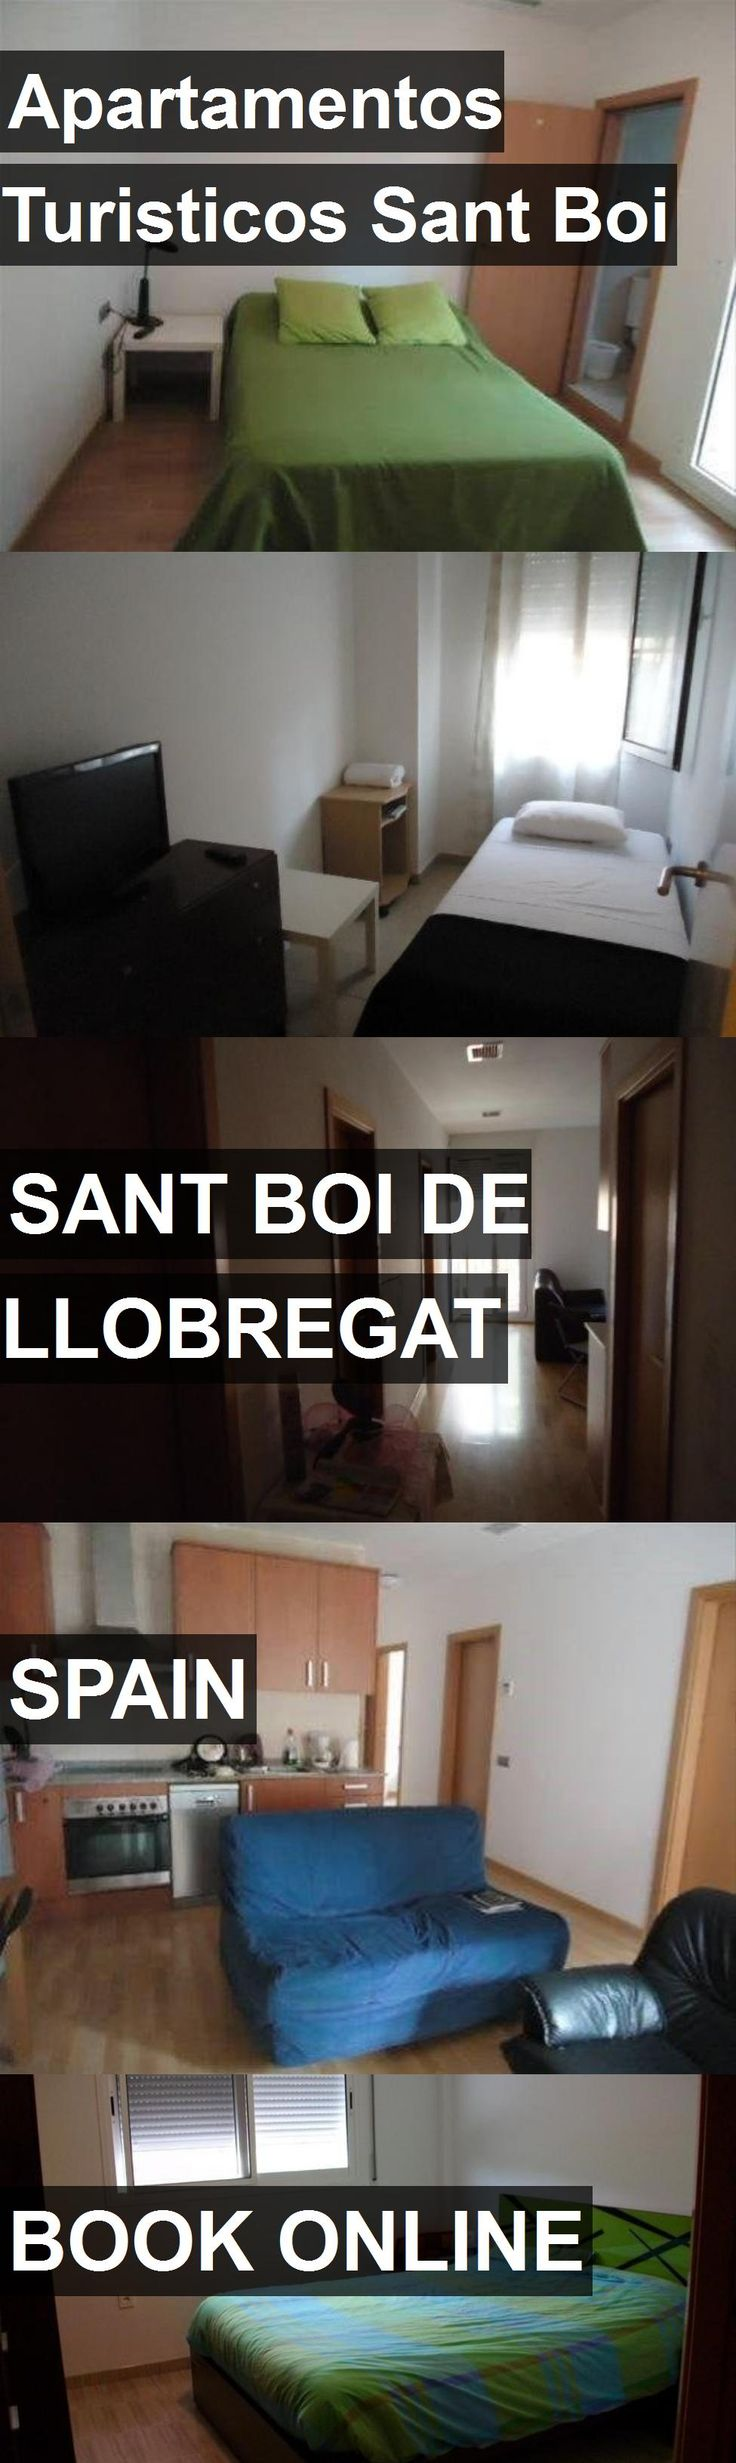 Hotel Apartamentos Turisticos Sant Boi in Sant Boi de Llobregat, Spain. For more information, photos, reviews and best prices please follow the link. #Spain #SantBoideLlobregat #ApartamentosTuristicosSantBoi #hotel #travel #vacation